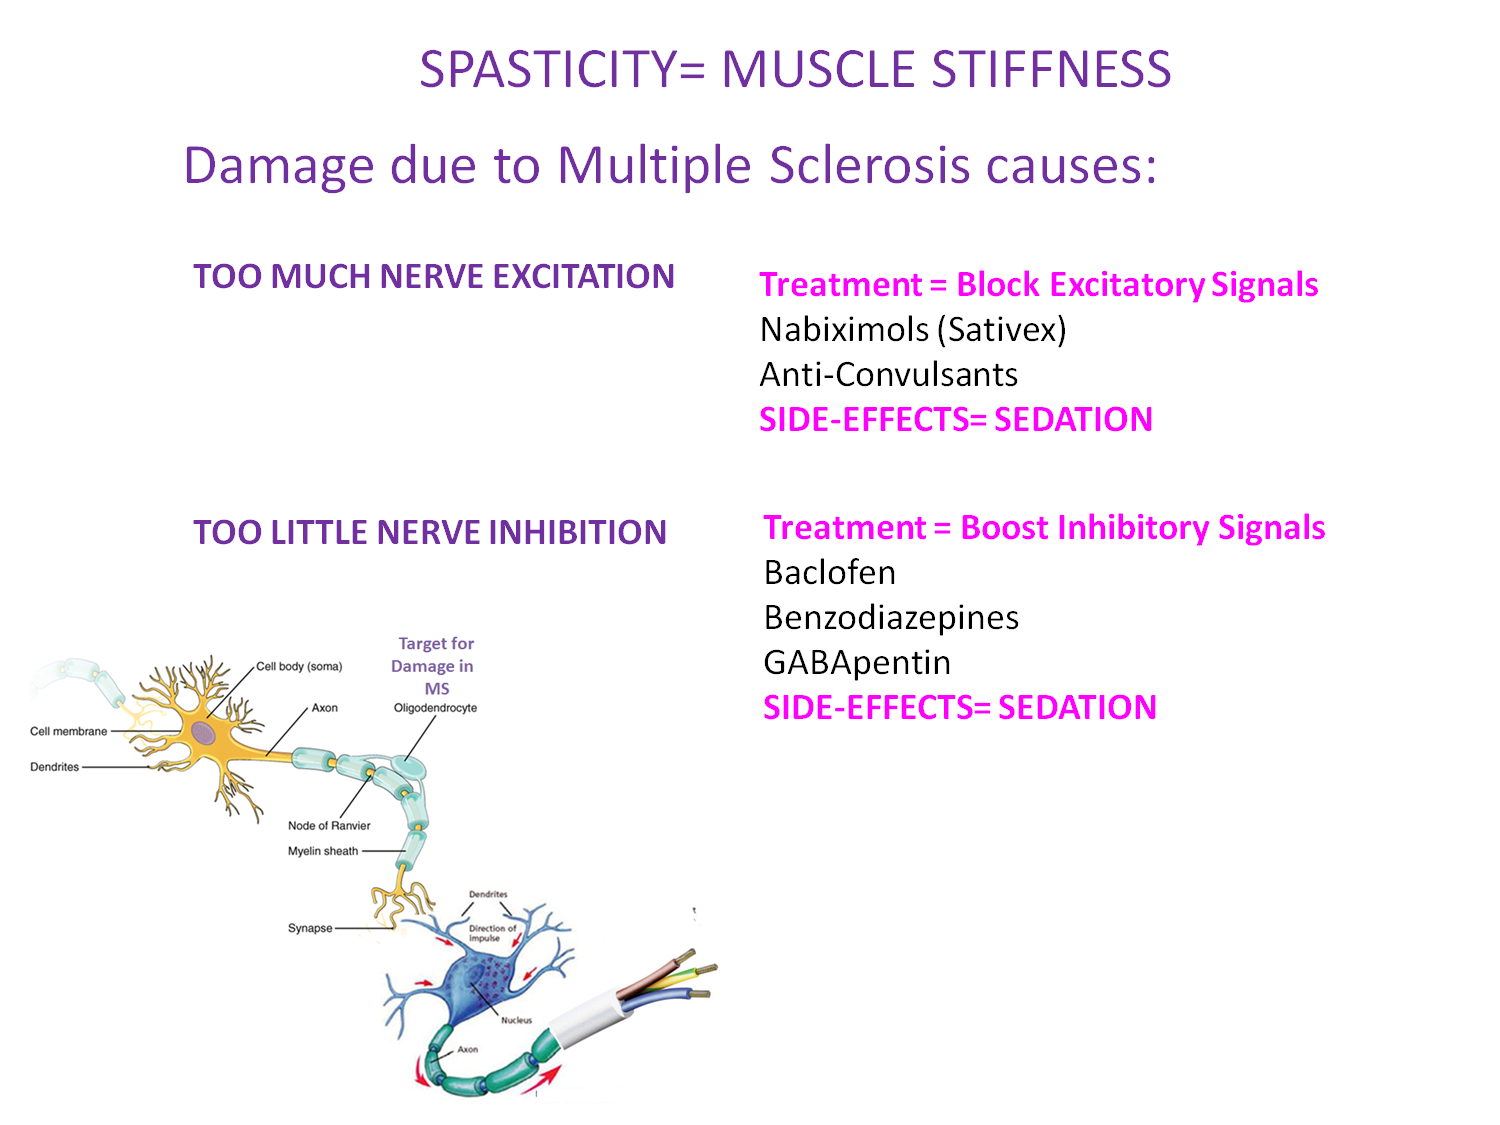 multiple sclerosis research: spasticity is common occurance, Skeleton